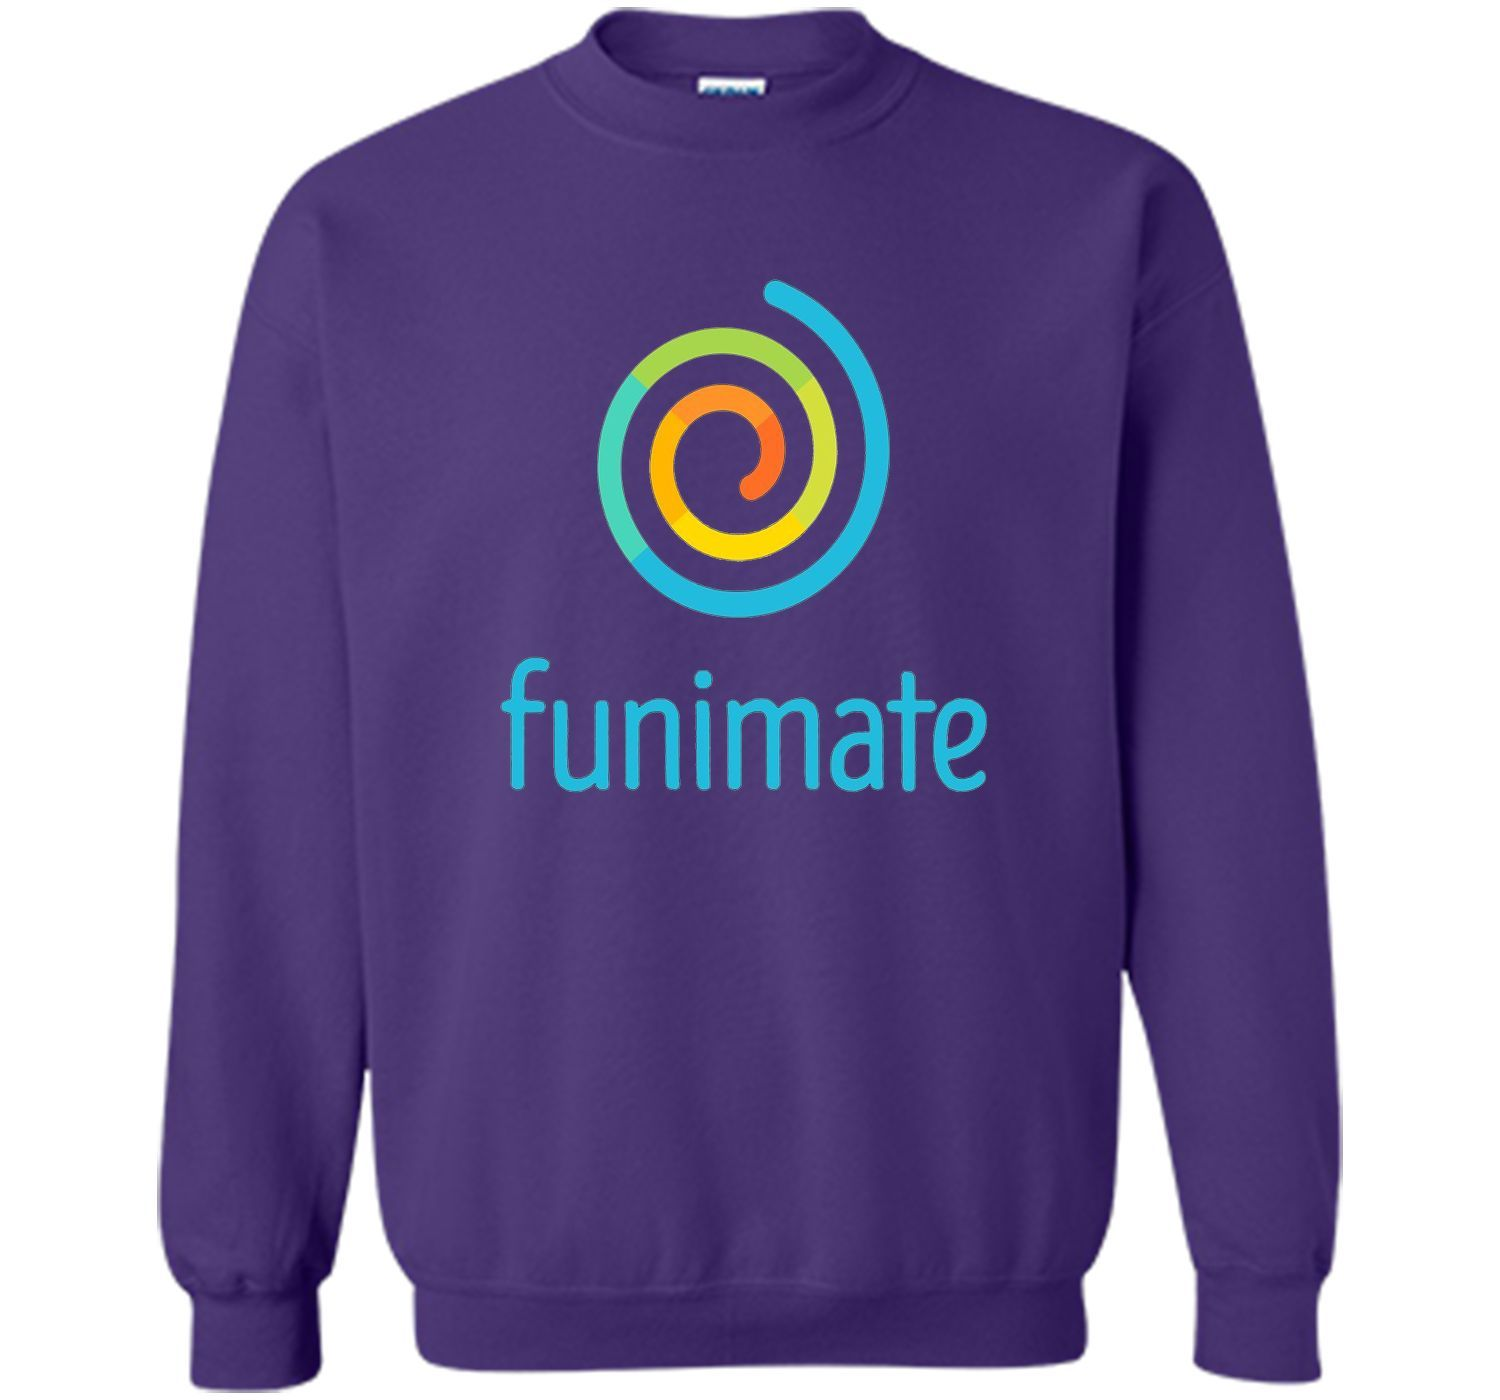 Offical Funimate T-Shirt